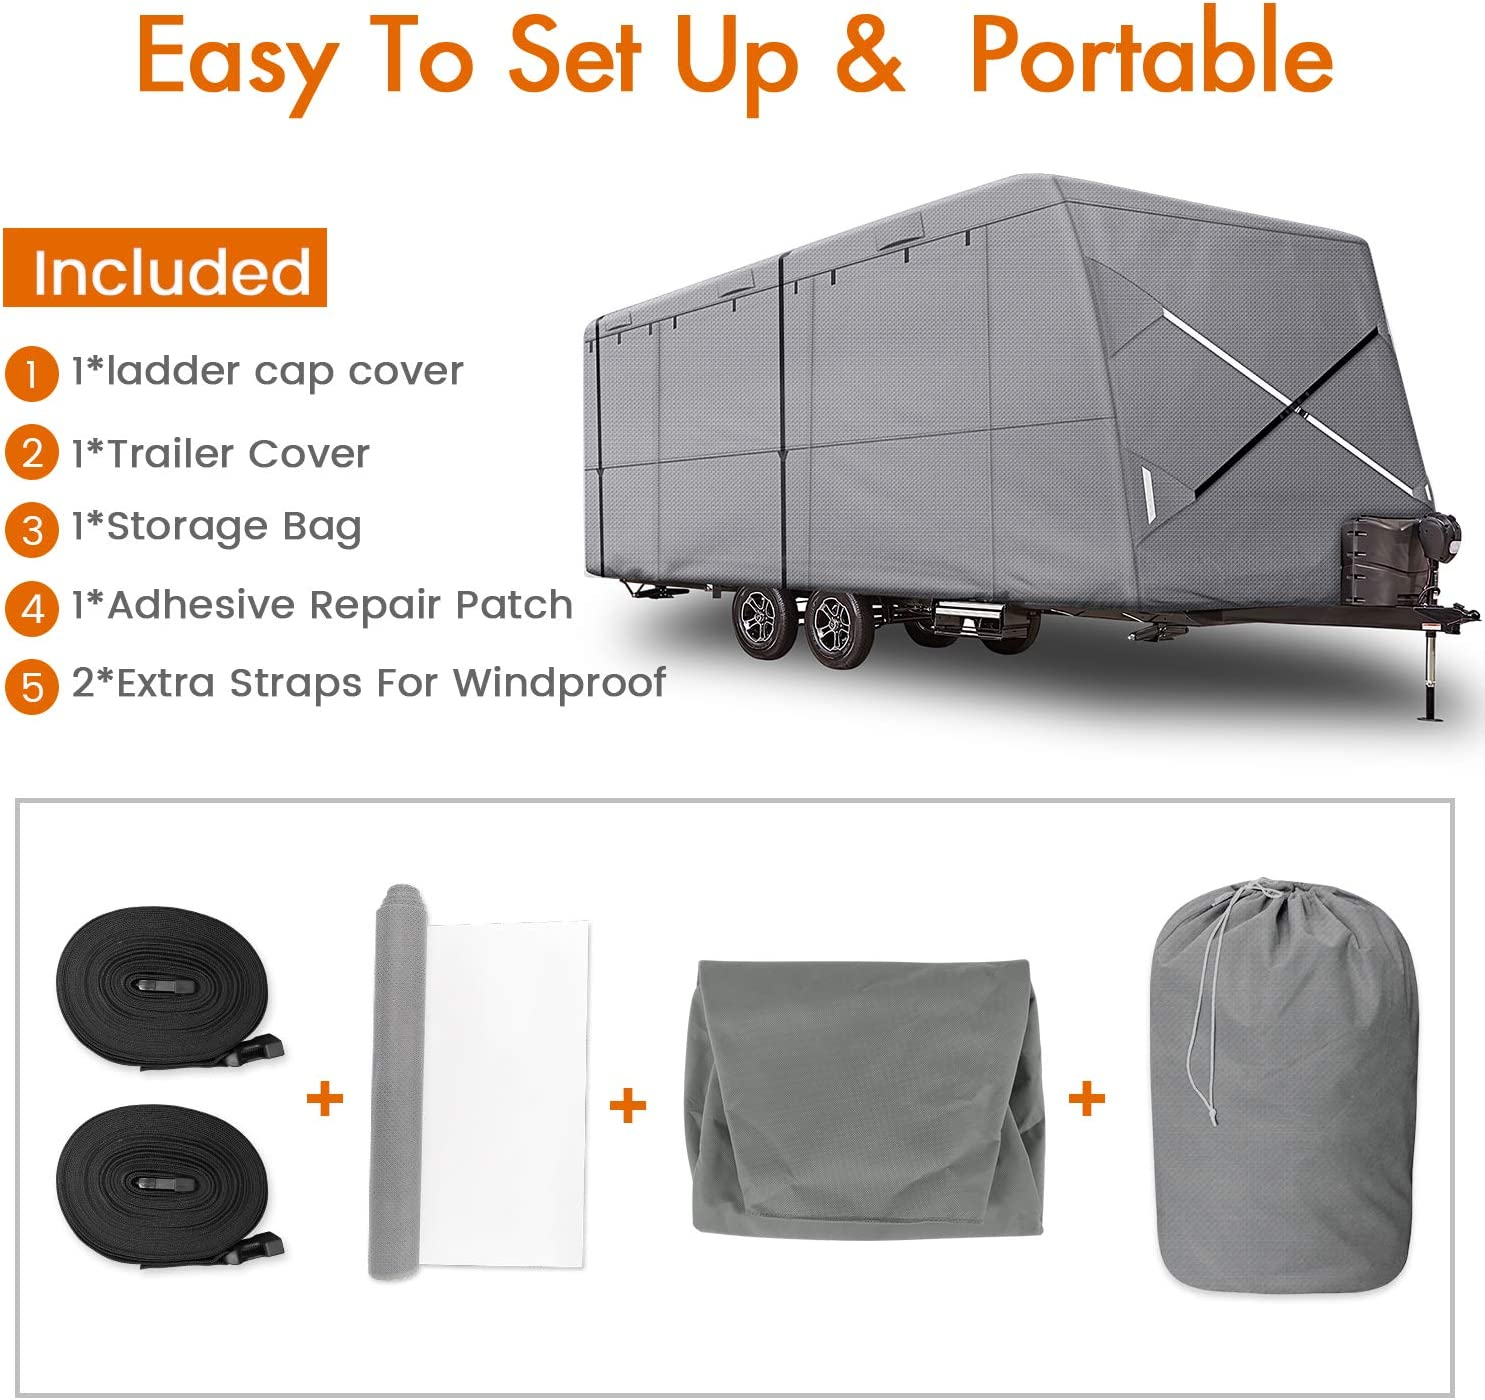 XGear Outdoors Travel Trailer RV Cover Fits 22-24 Travel Trailer or Toy Hauler Grey with 3-Ply Roof for Max Weather Protection